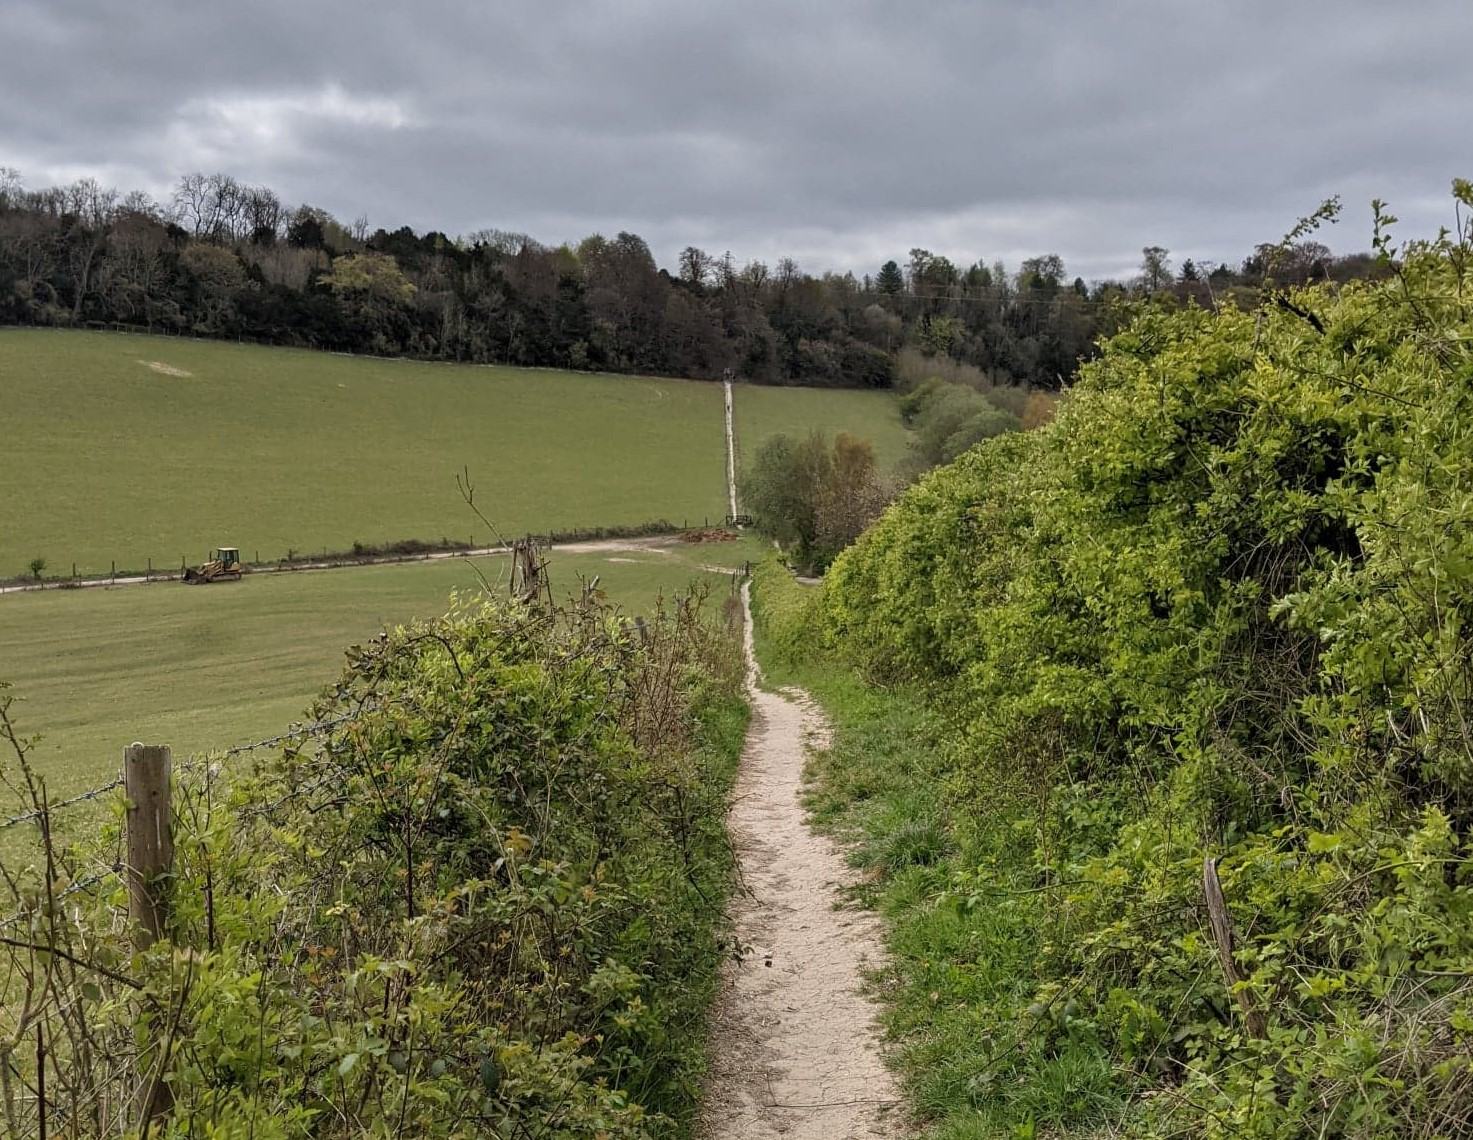 photo of a countruside trial. there is a well marked path between a green field and a hedge. there are woodlands in the distance. the sky is cloudy